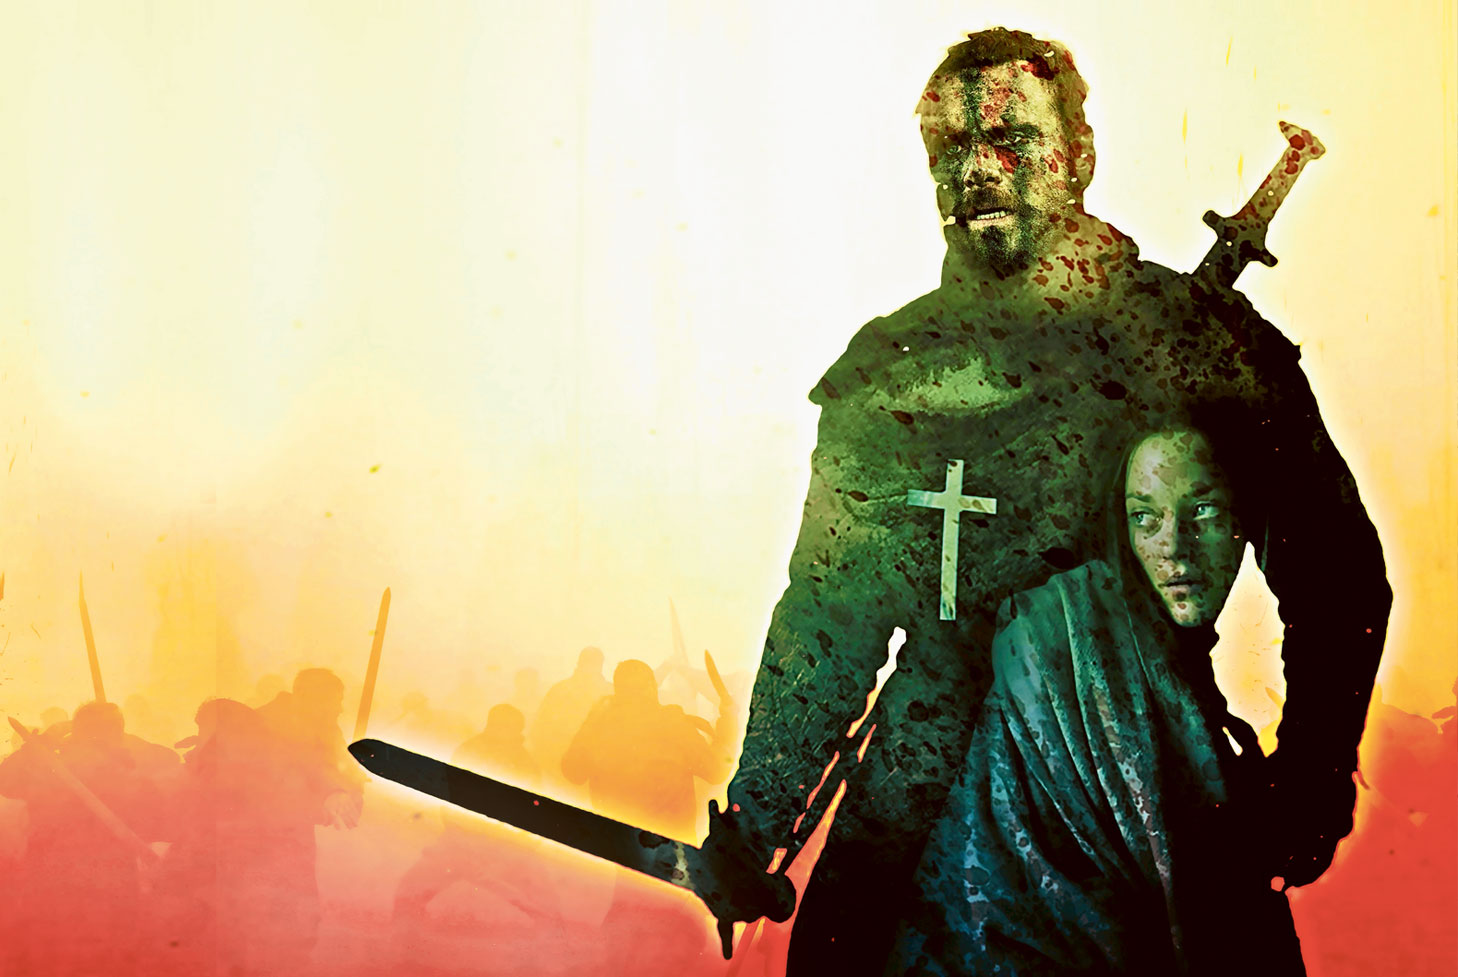 political power and passion macbeth review crosslightcrosslight macbeth